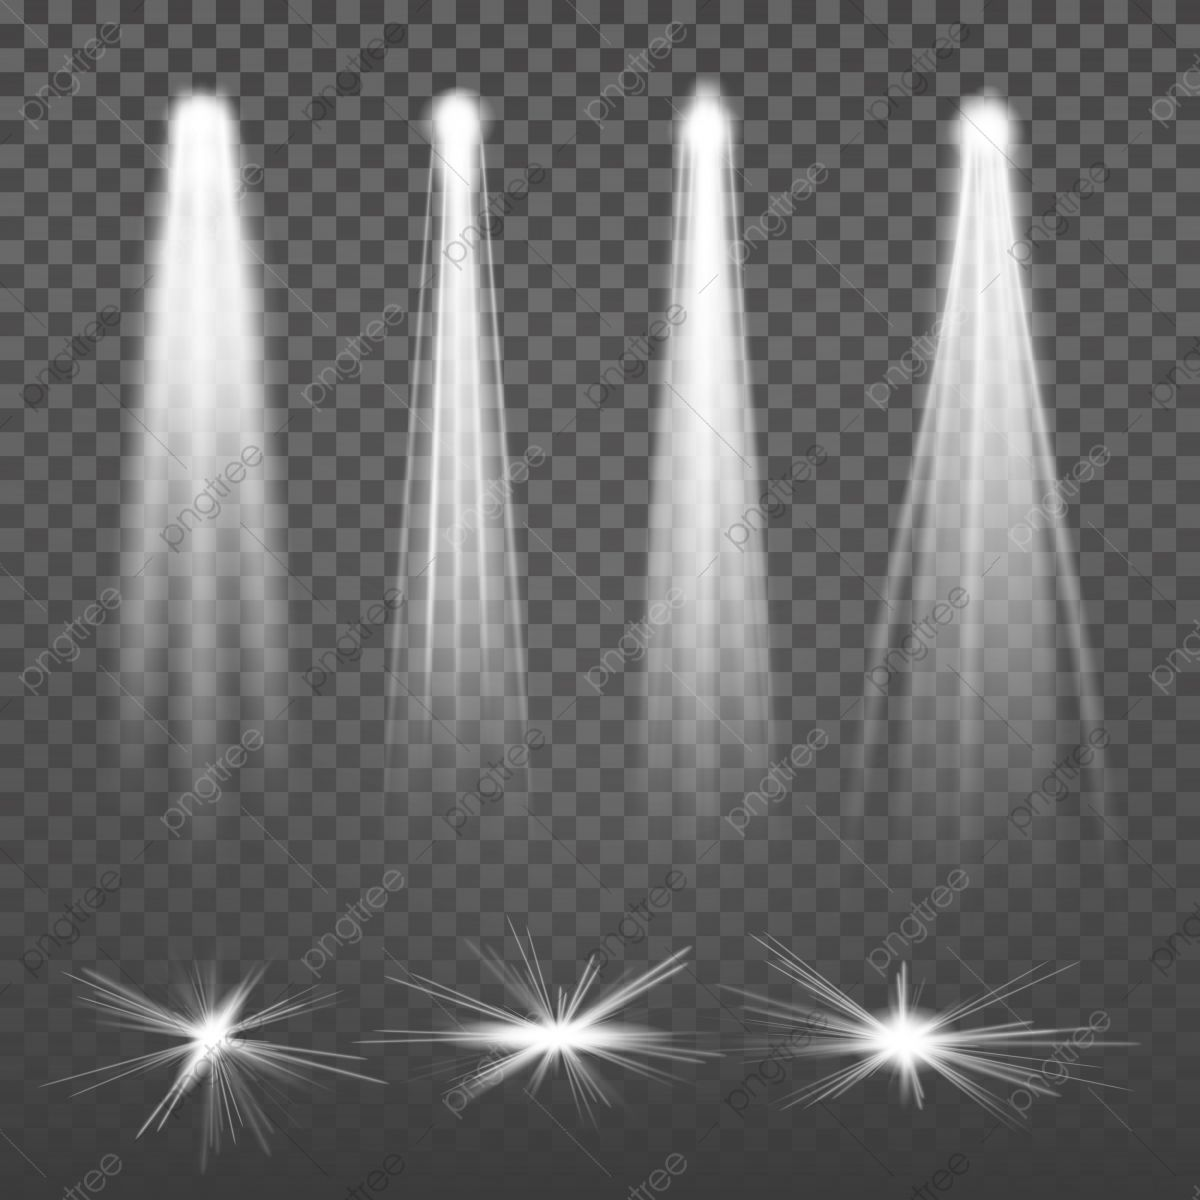 Beam Beam Of Light Optical Radiation Light Png Transparent Clipart Image And Psd File For Free Download Light Background Images Banner Ads Design Light Beam